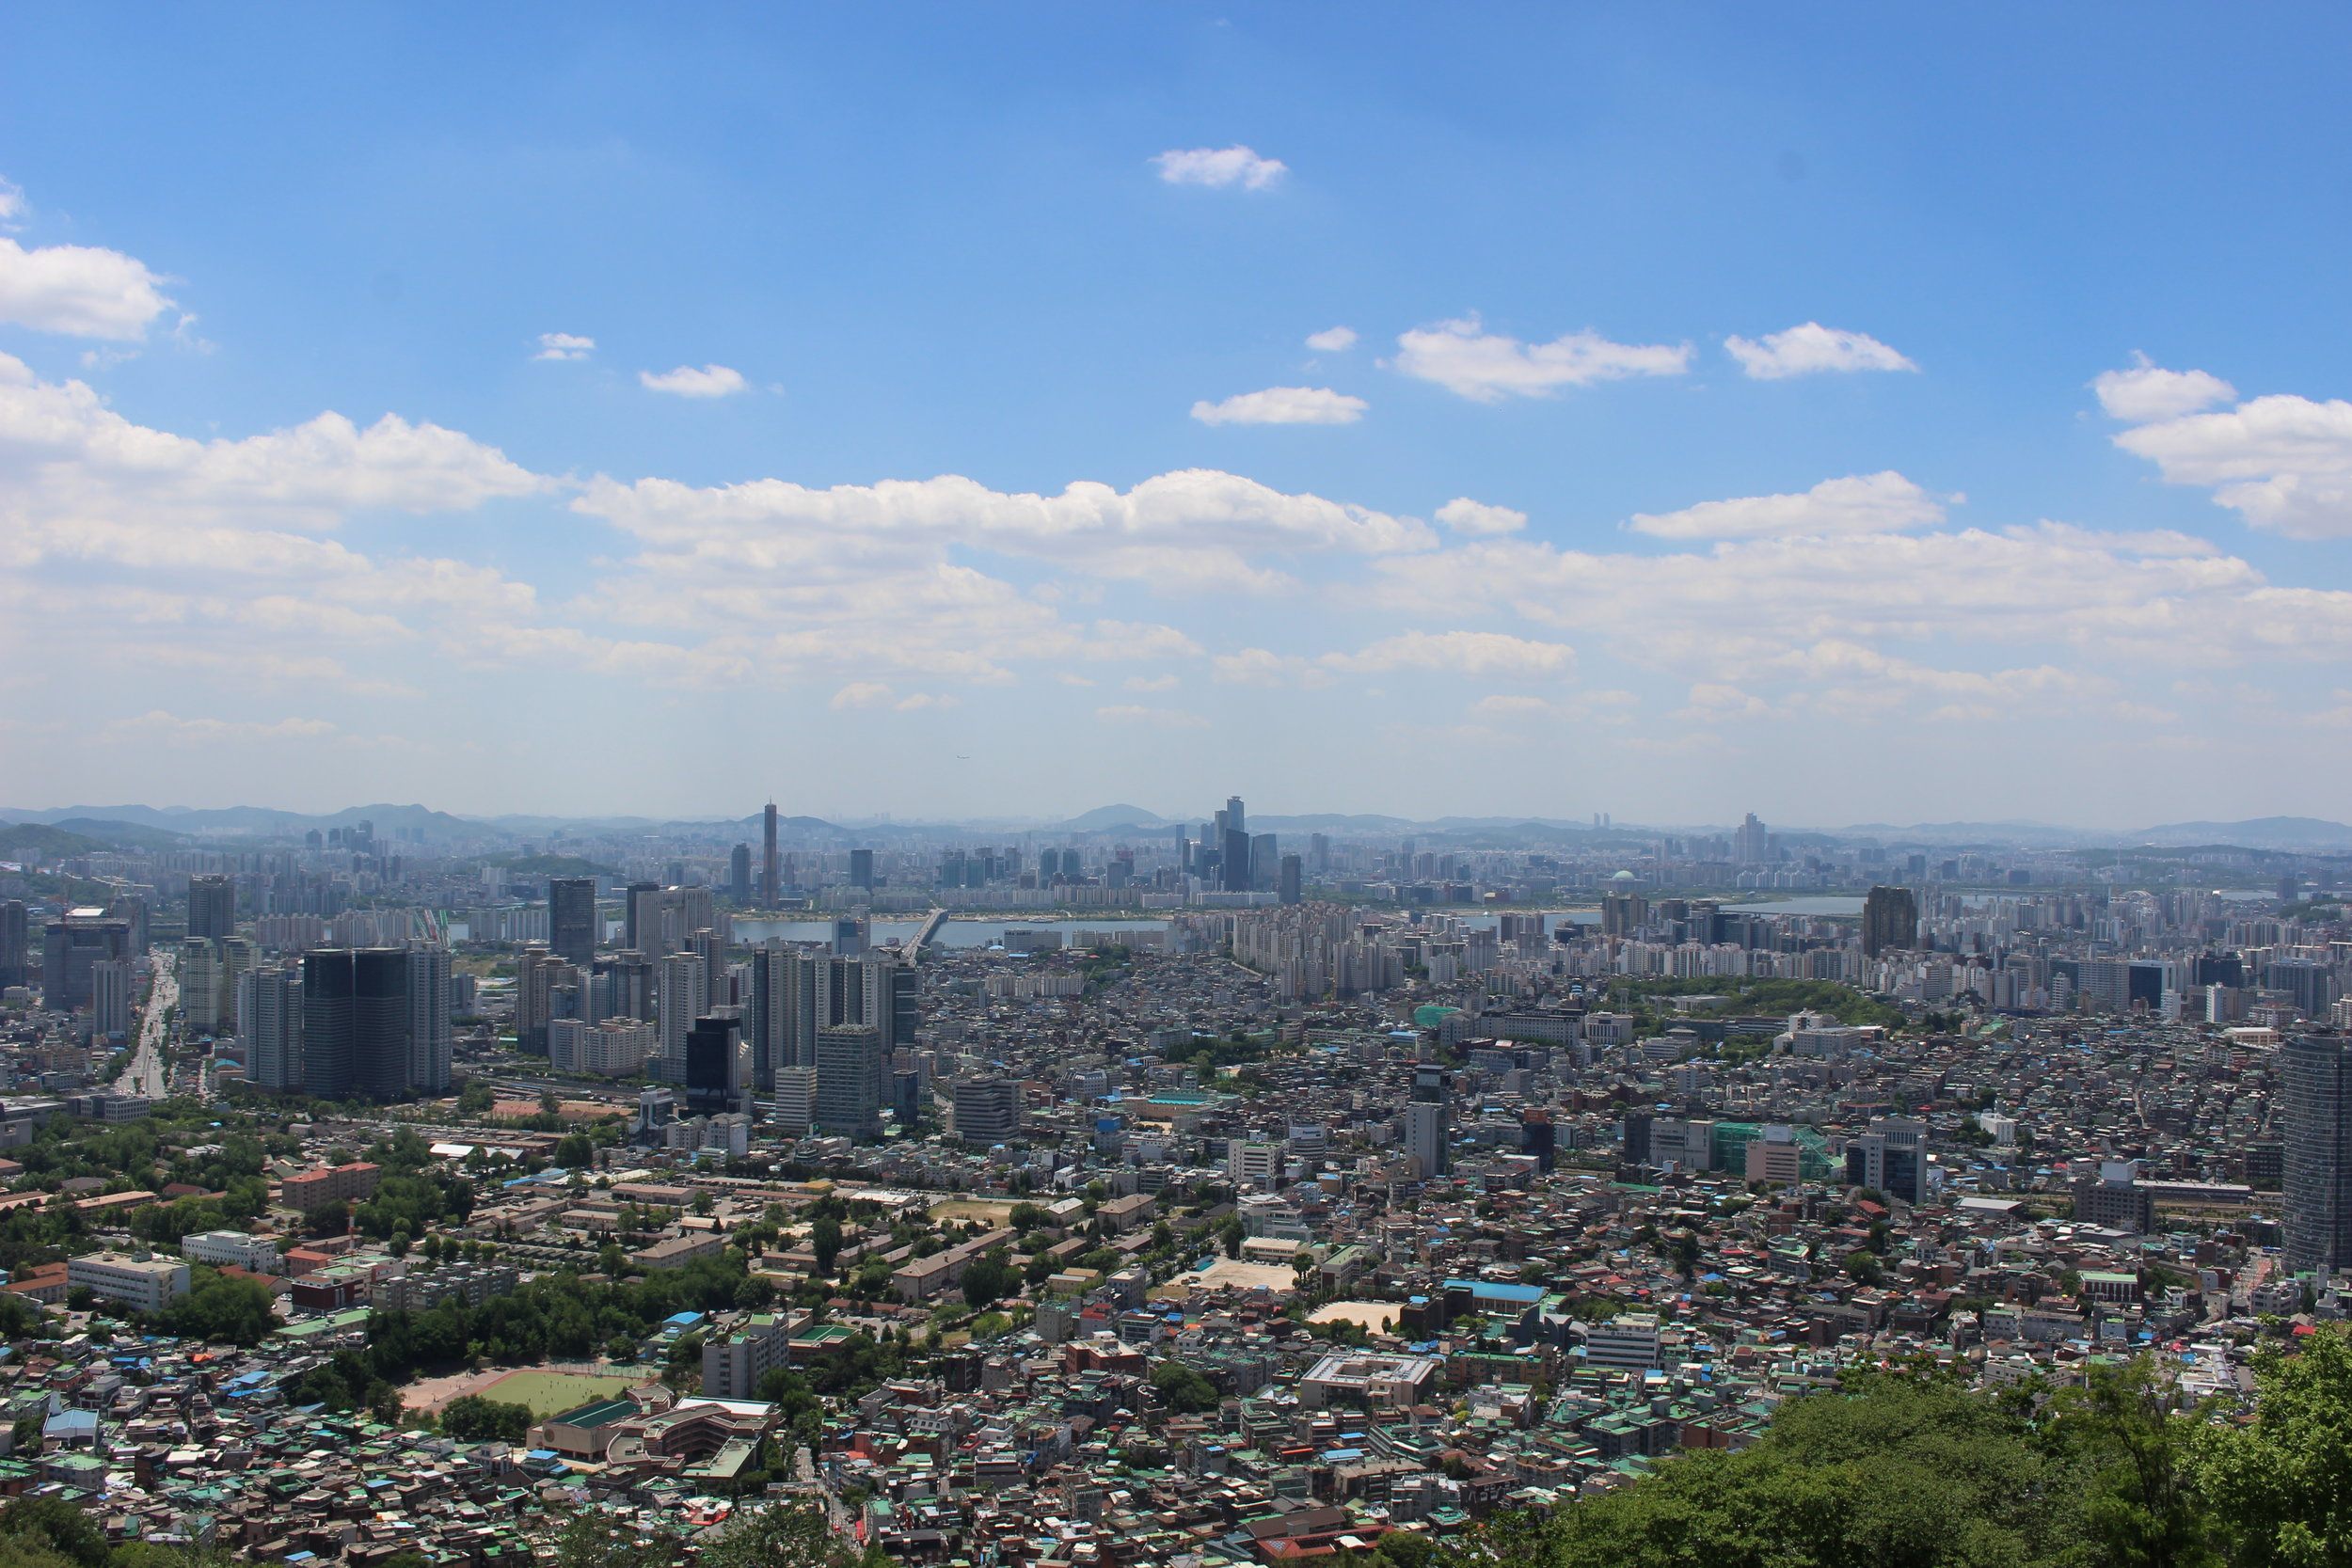 View of Seoul from Namsan Seoul Tower